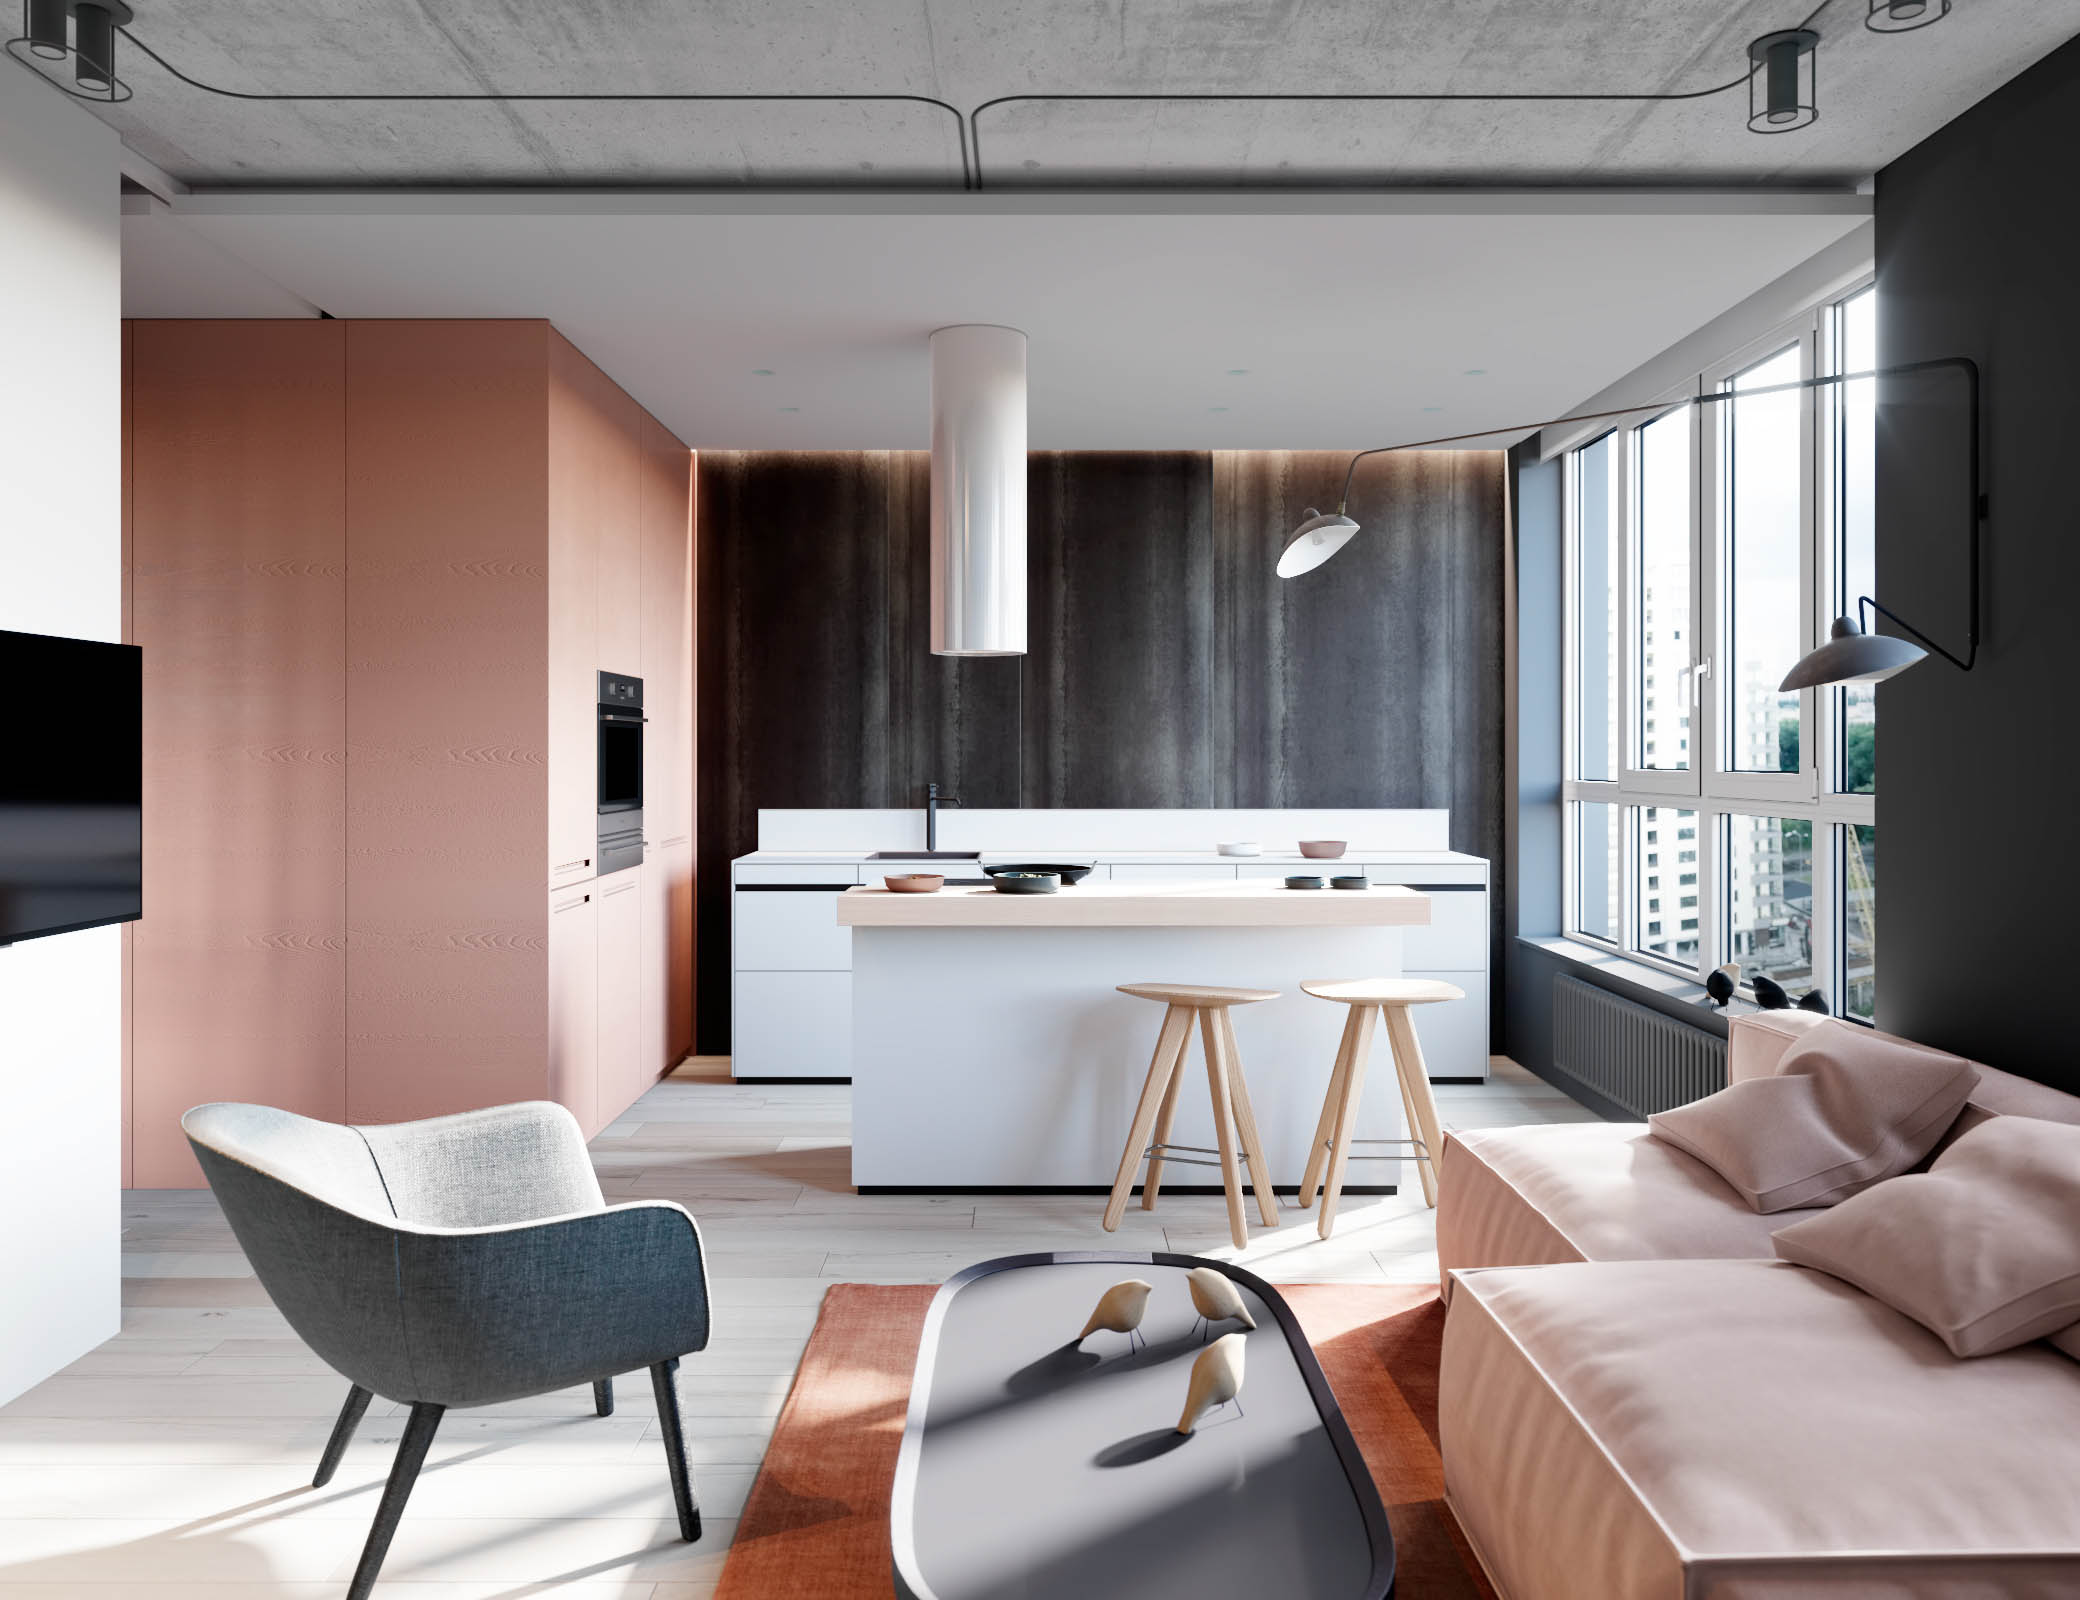 Dusty Pink - Check How to Use It in Interior Design